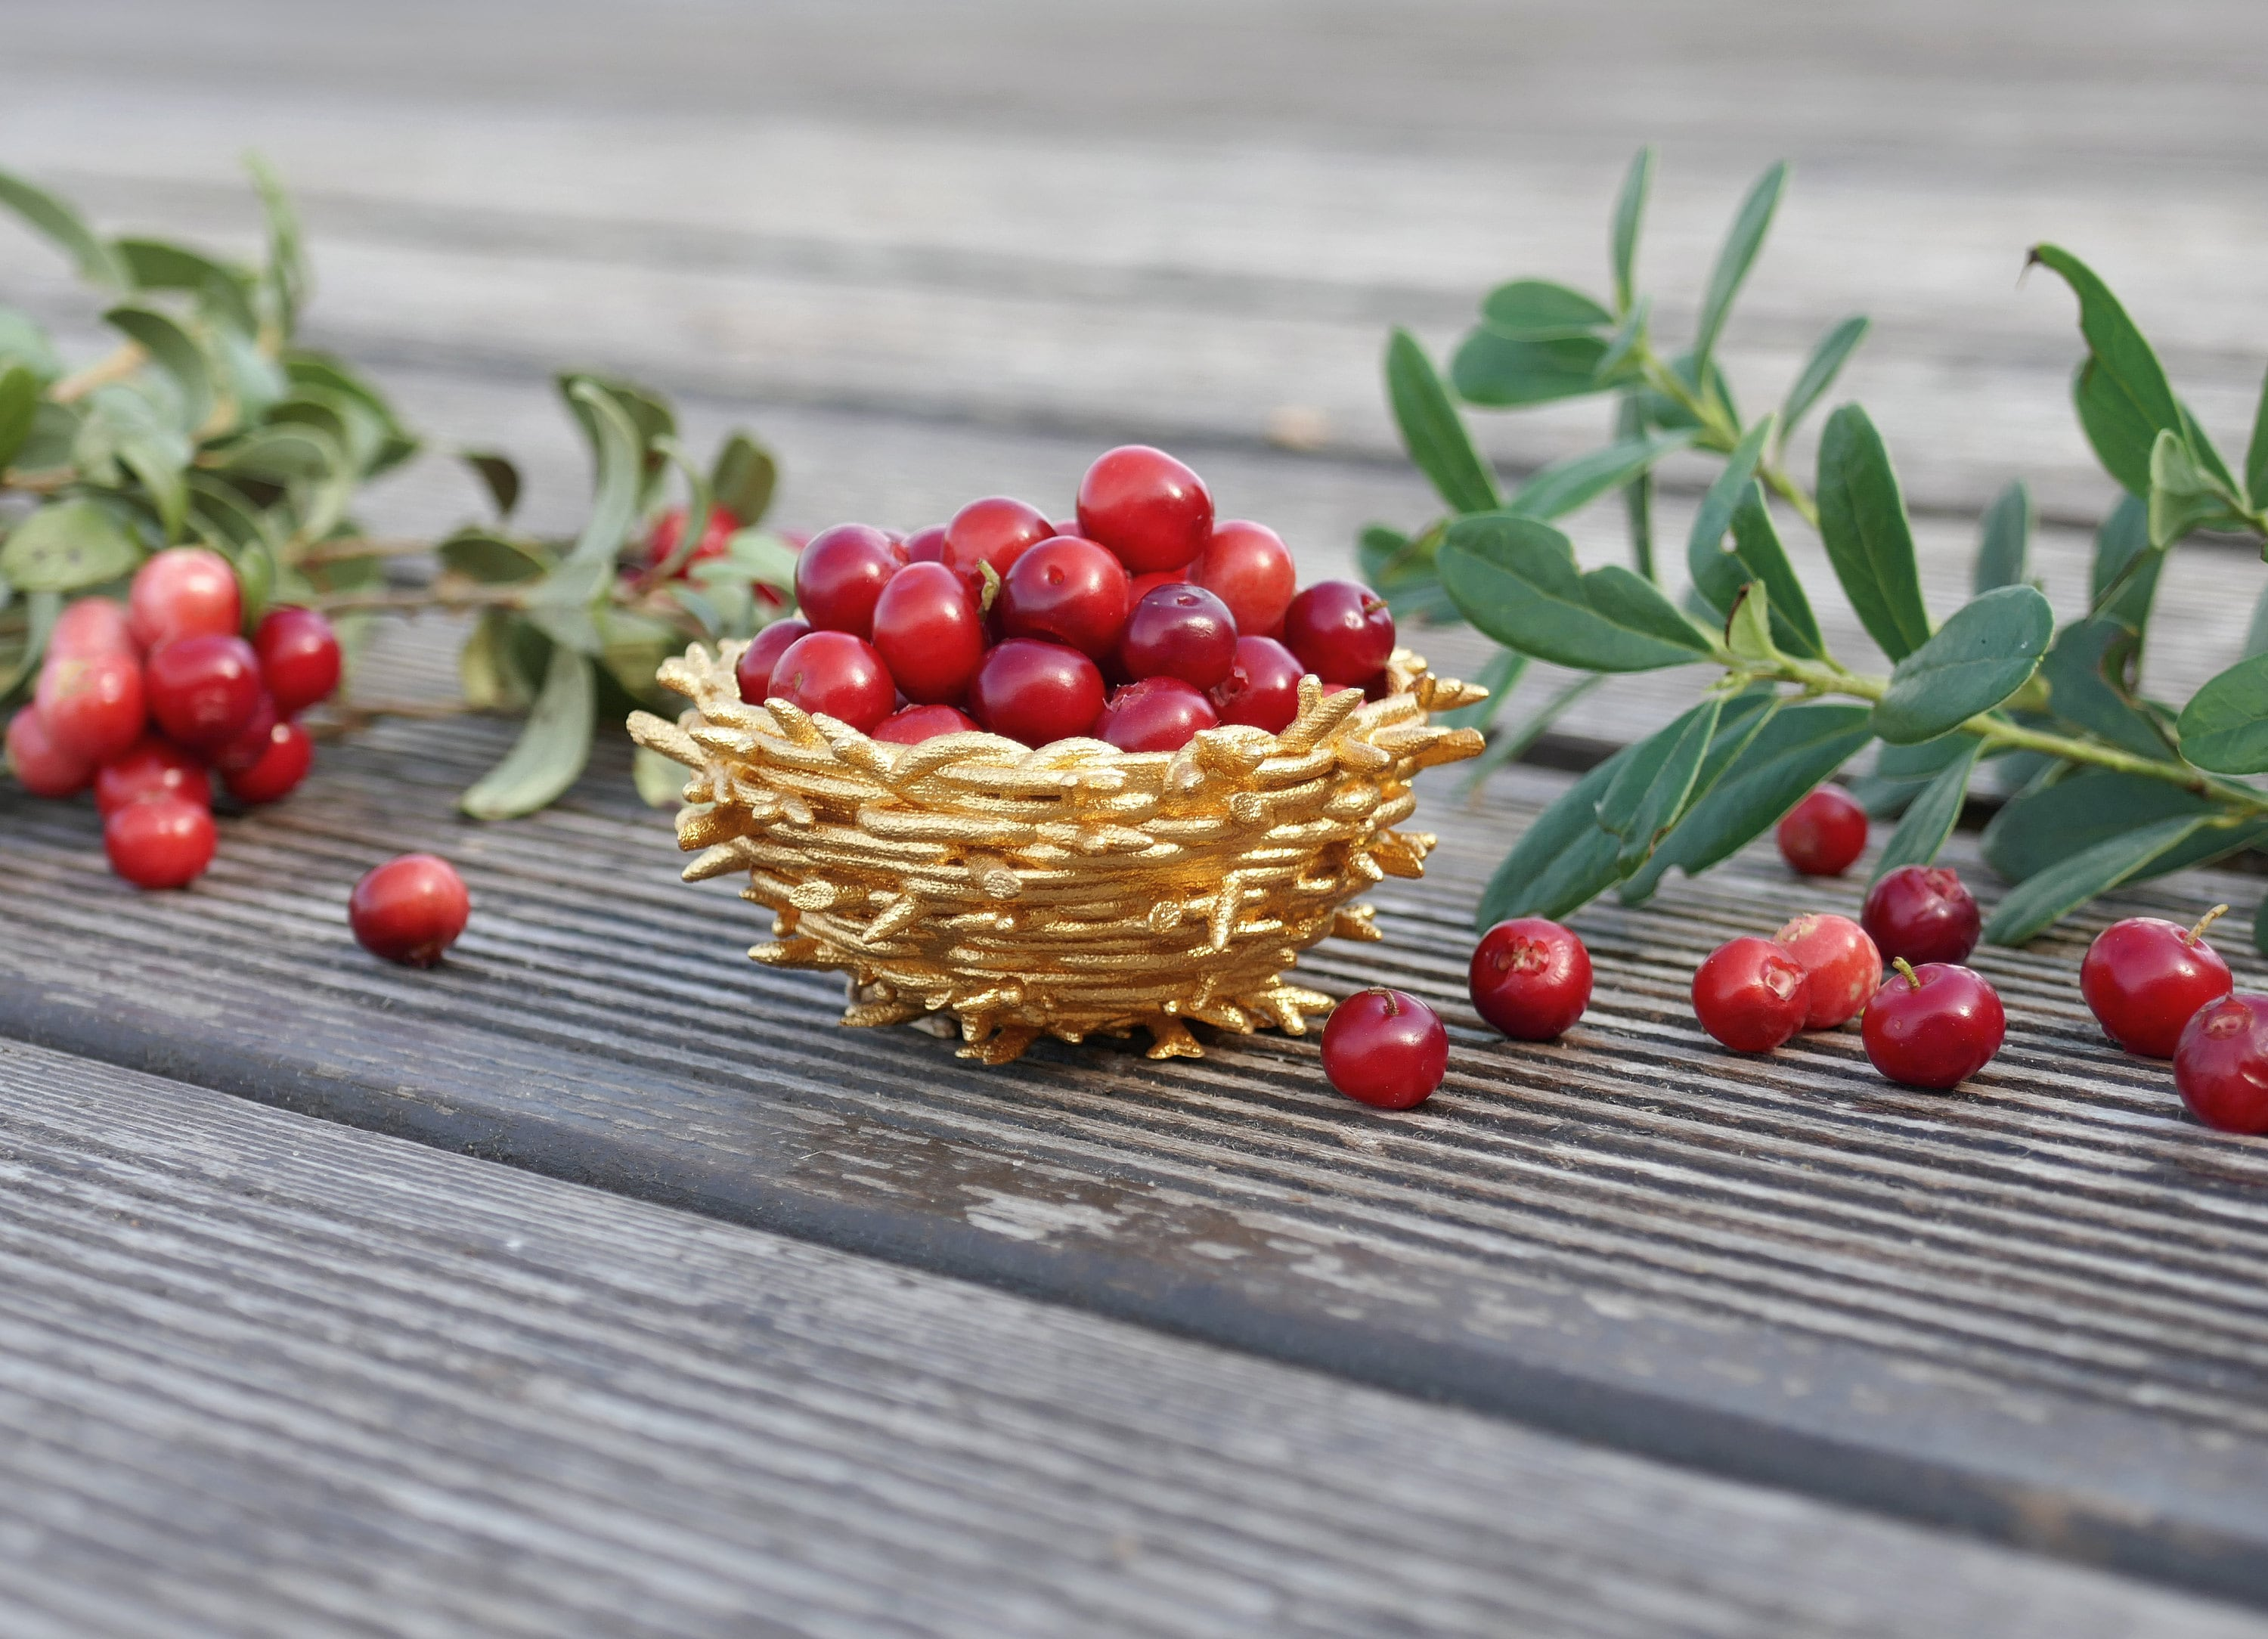 3D printed Gold Nest full of cranberries